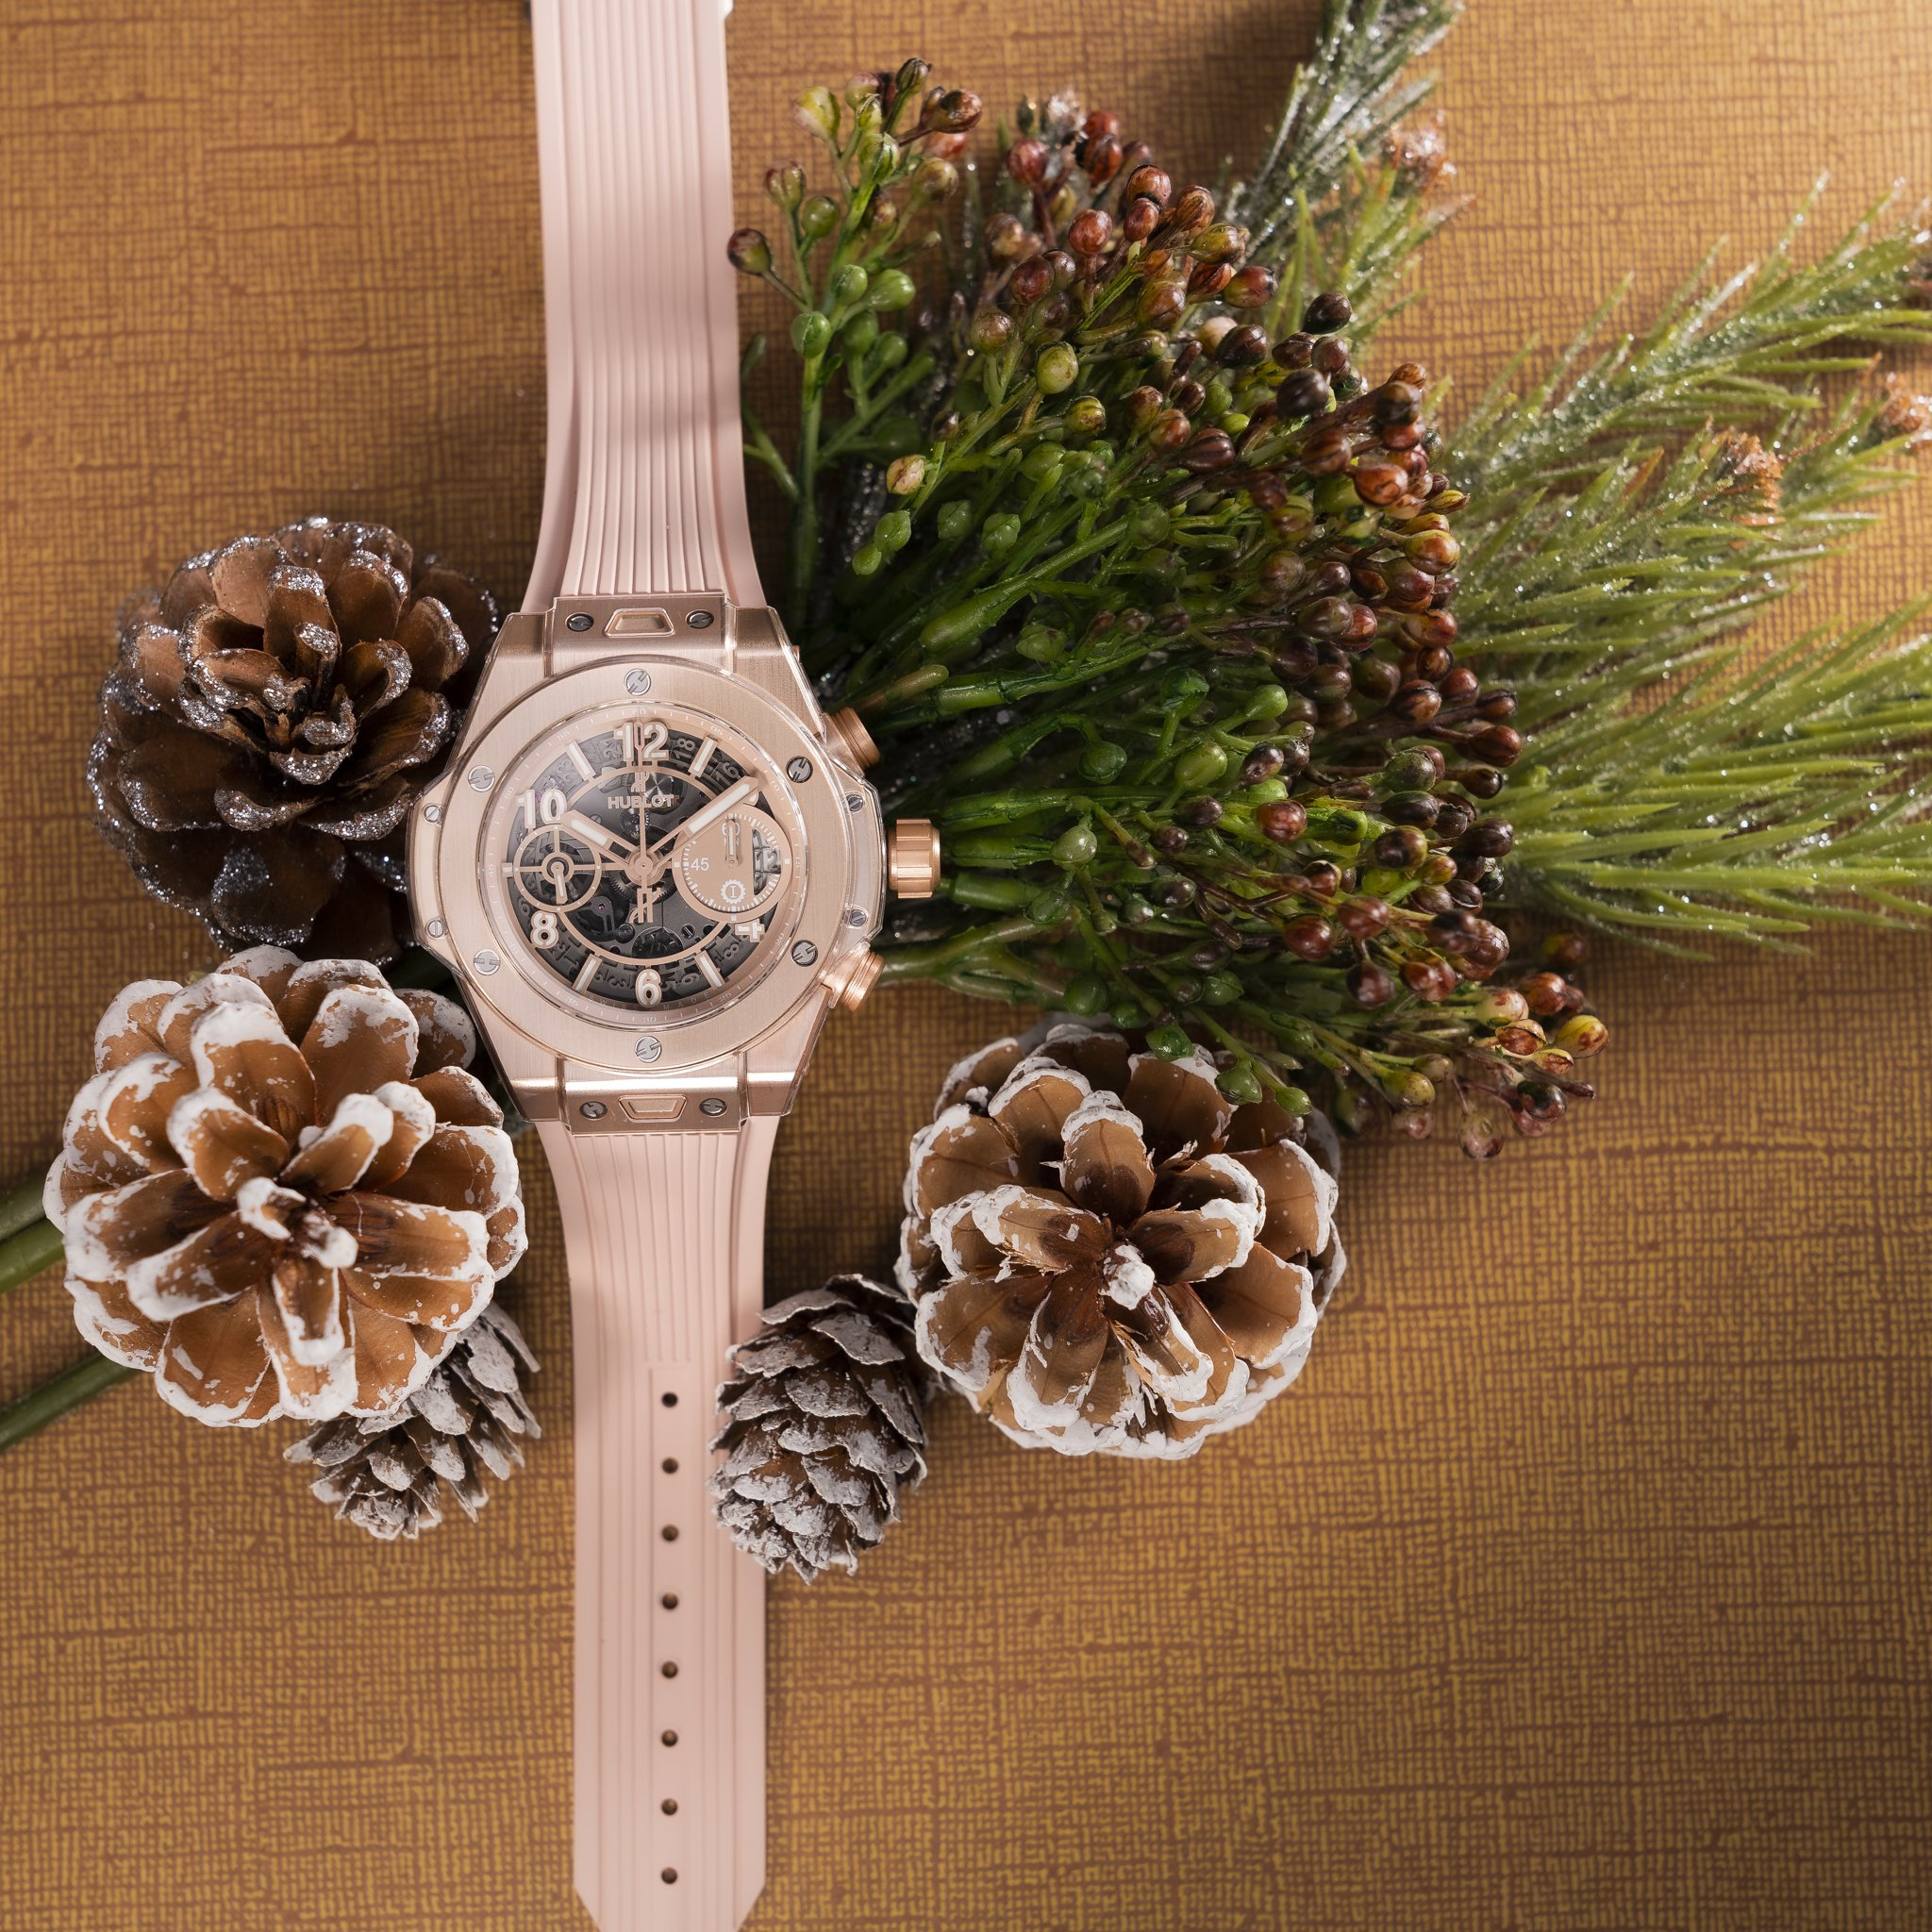 Hublot_Ahmed Seddiqi& Sons_Gifting.jpeg